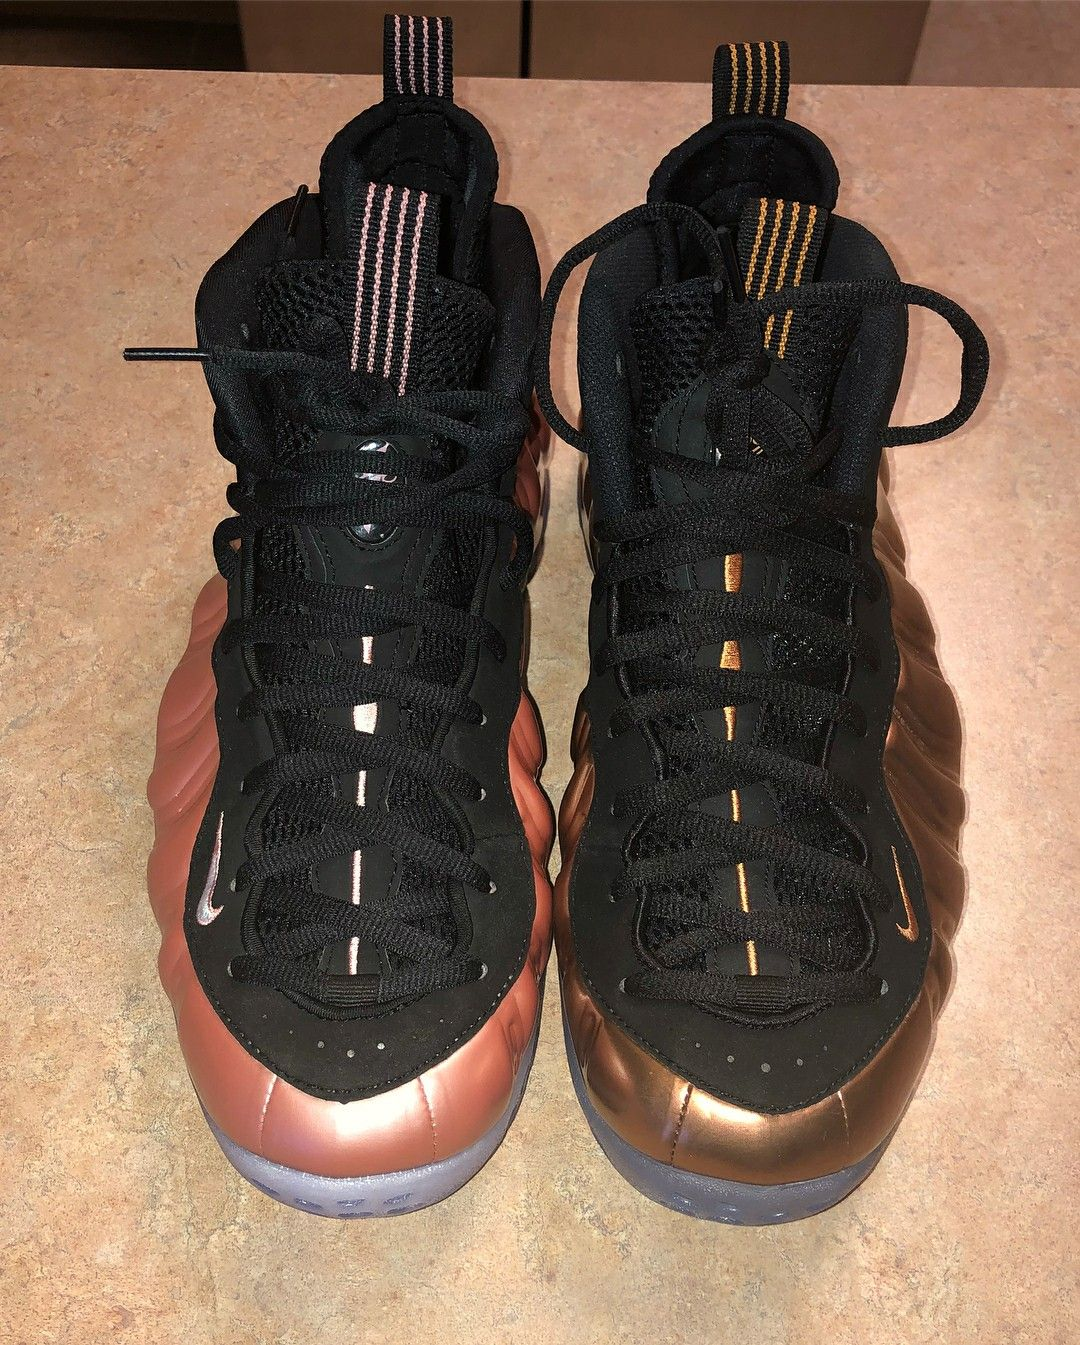 quality design bffc4 a018b Elemental Rose vs Copper Foamposite. | Things I like. ... in ...